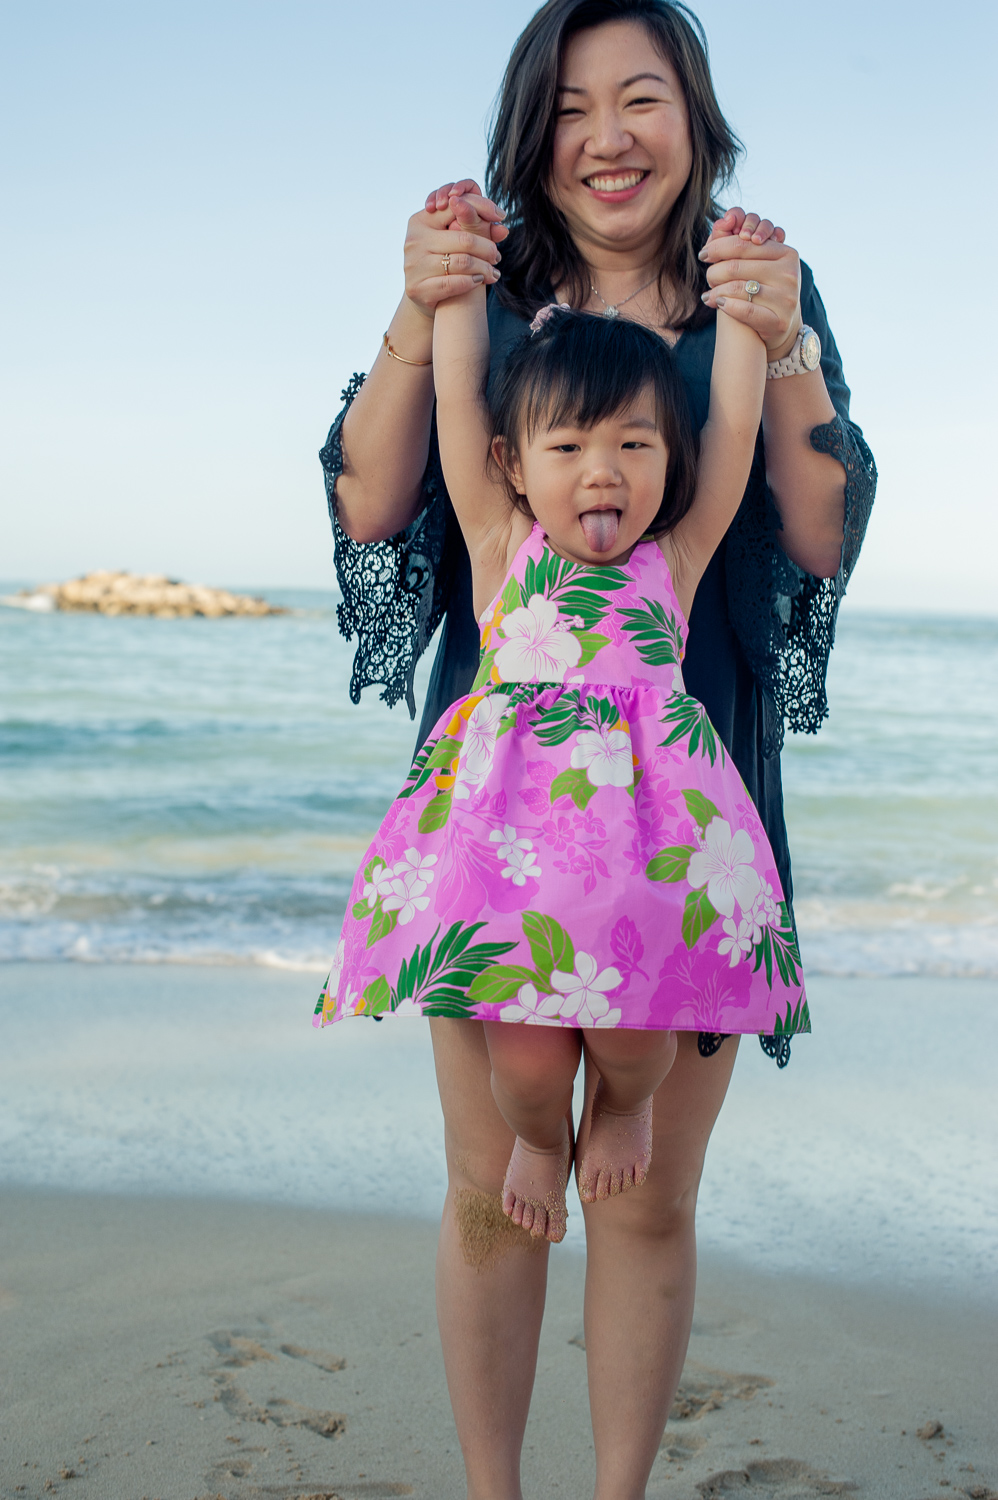 Mom holding daughter with pink aloha dress